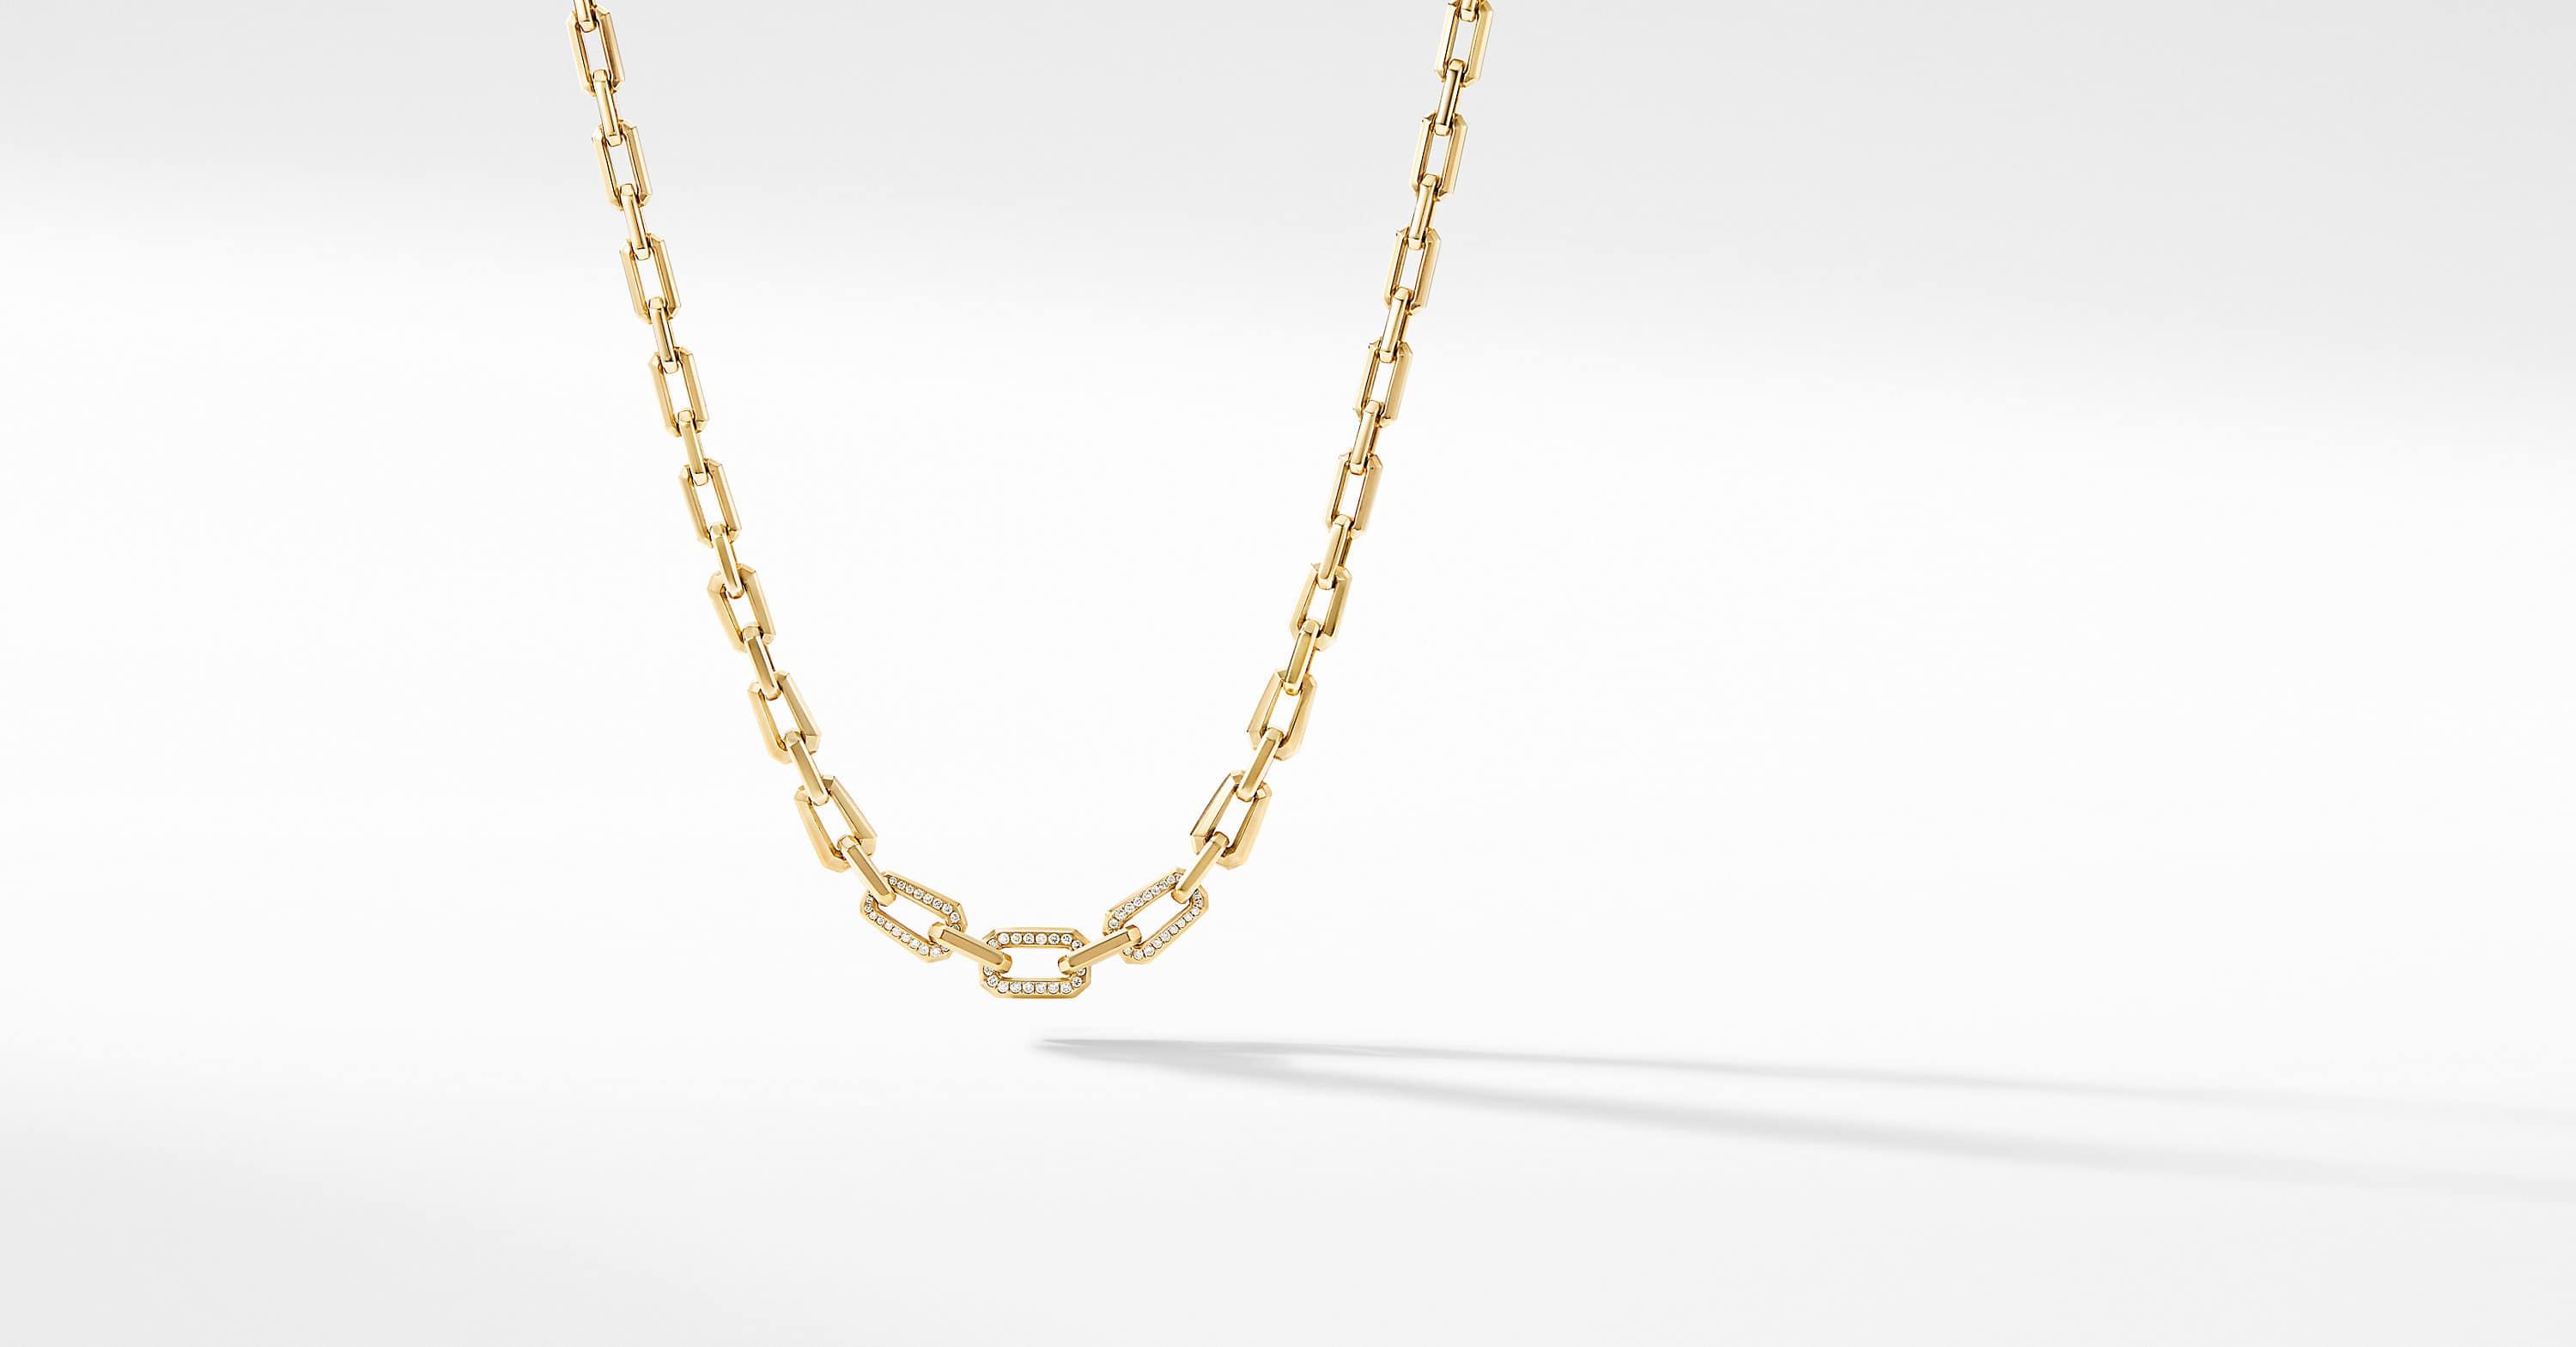 Novella Faceted Chain Necklace in 18K Yellow Gold with Pavé